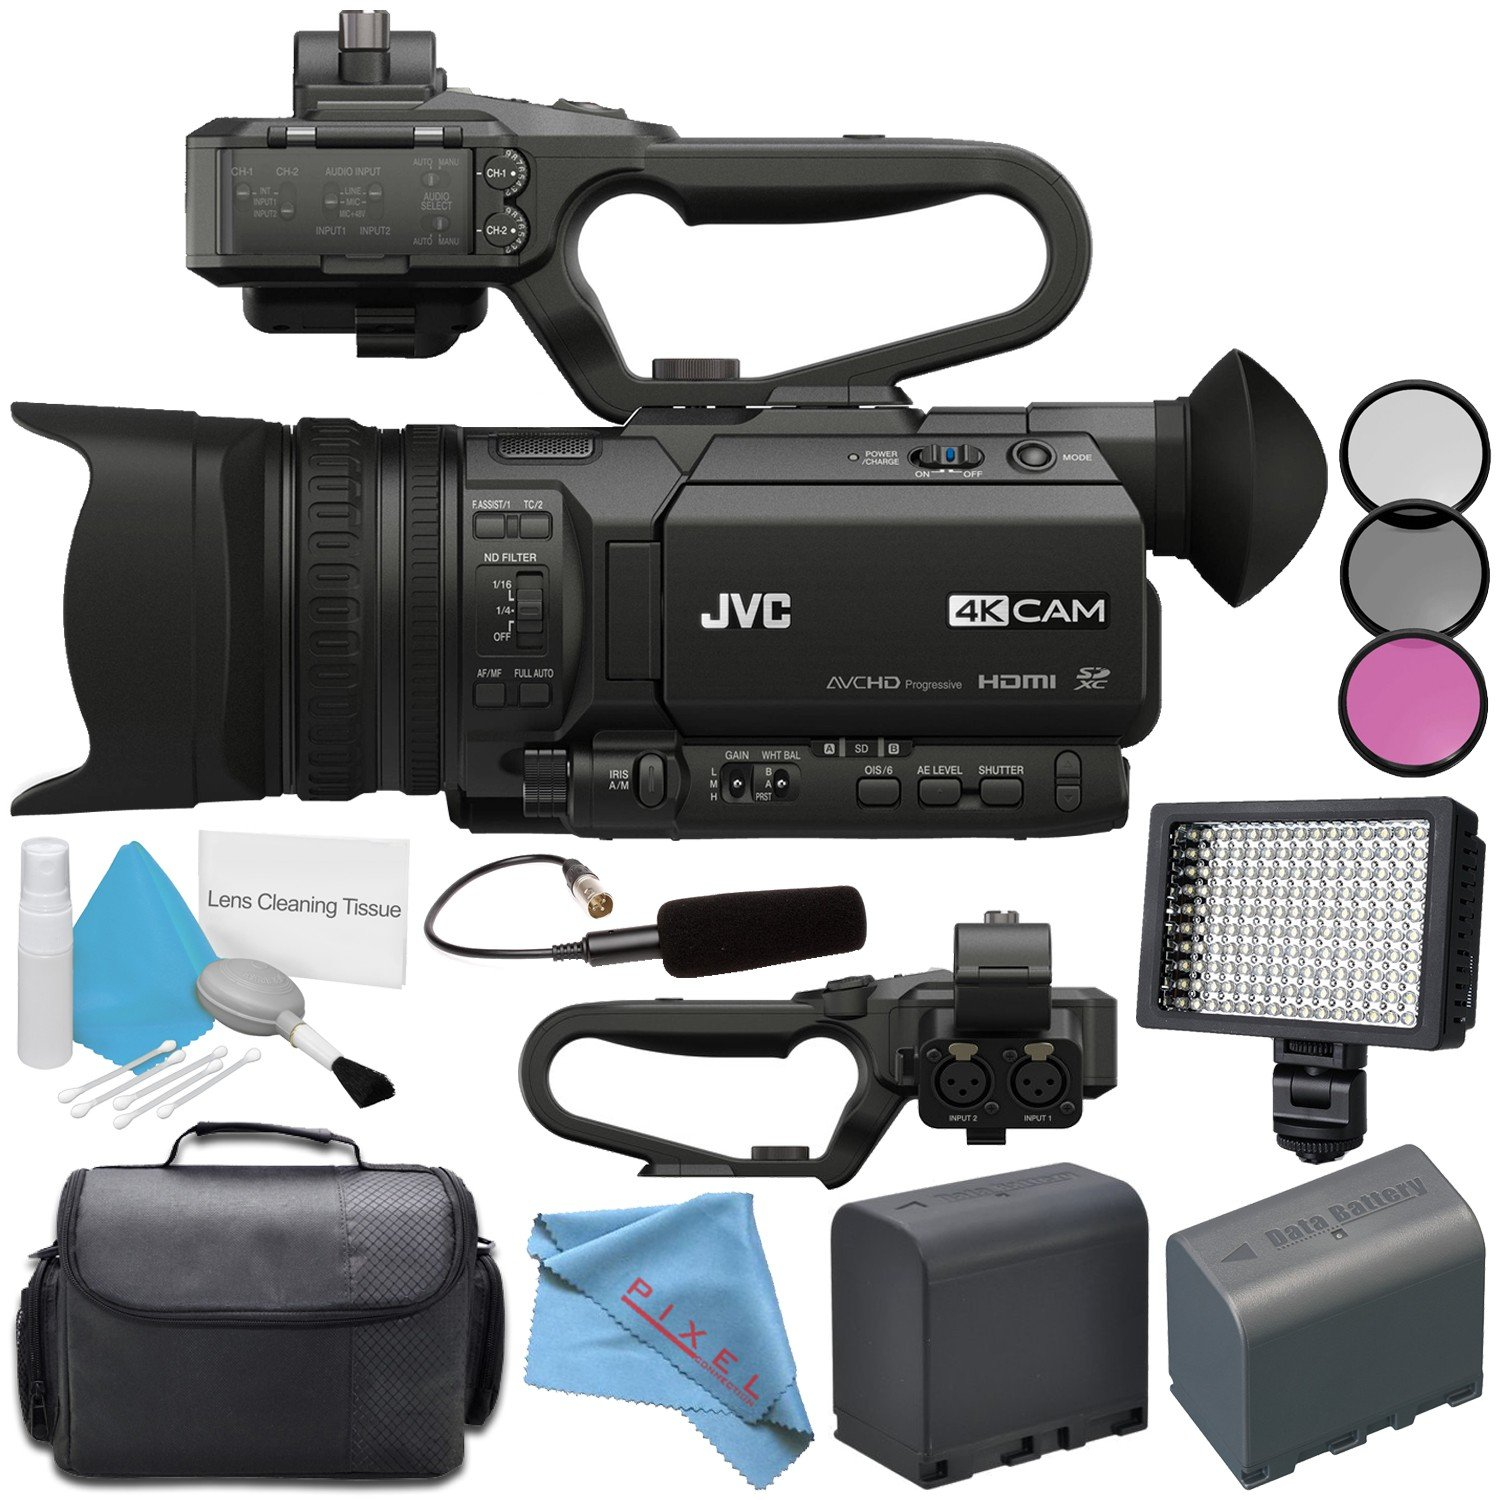 JVC GY-HM170UA 4KCAM Compact Professional Camcorder with Top Handle Audio Unit + BNV-F823 Replacement Lithium Ion Battery + Professional 160 LED Video Light Studio Series Bundle by JVC